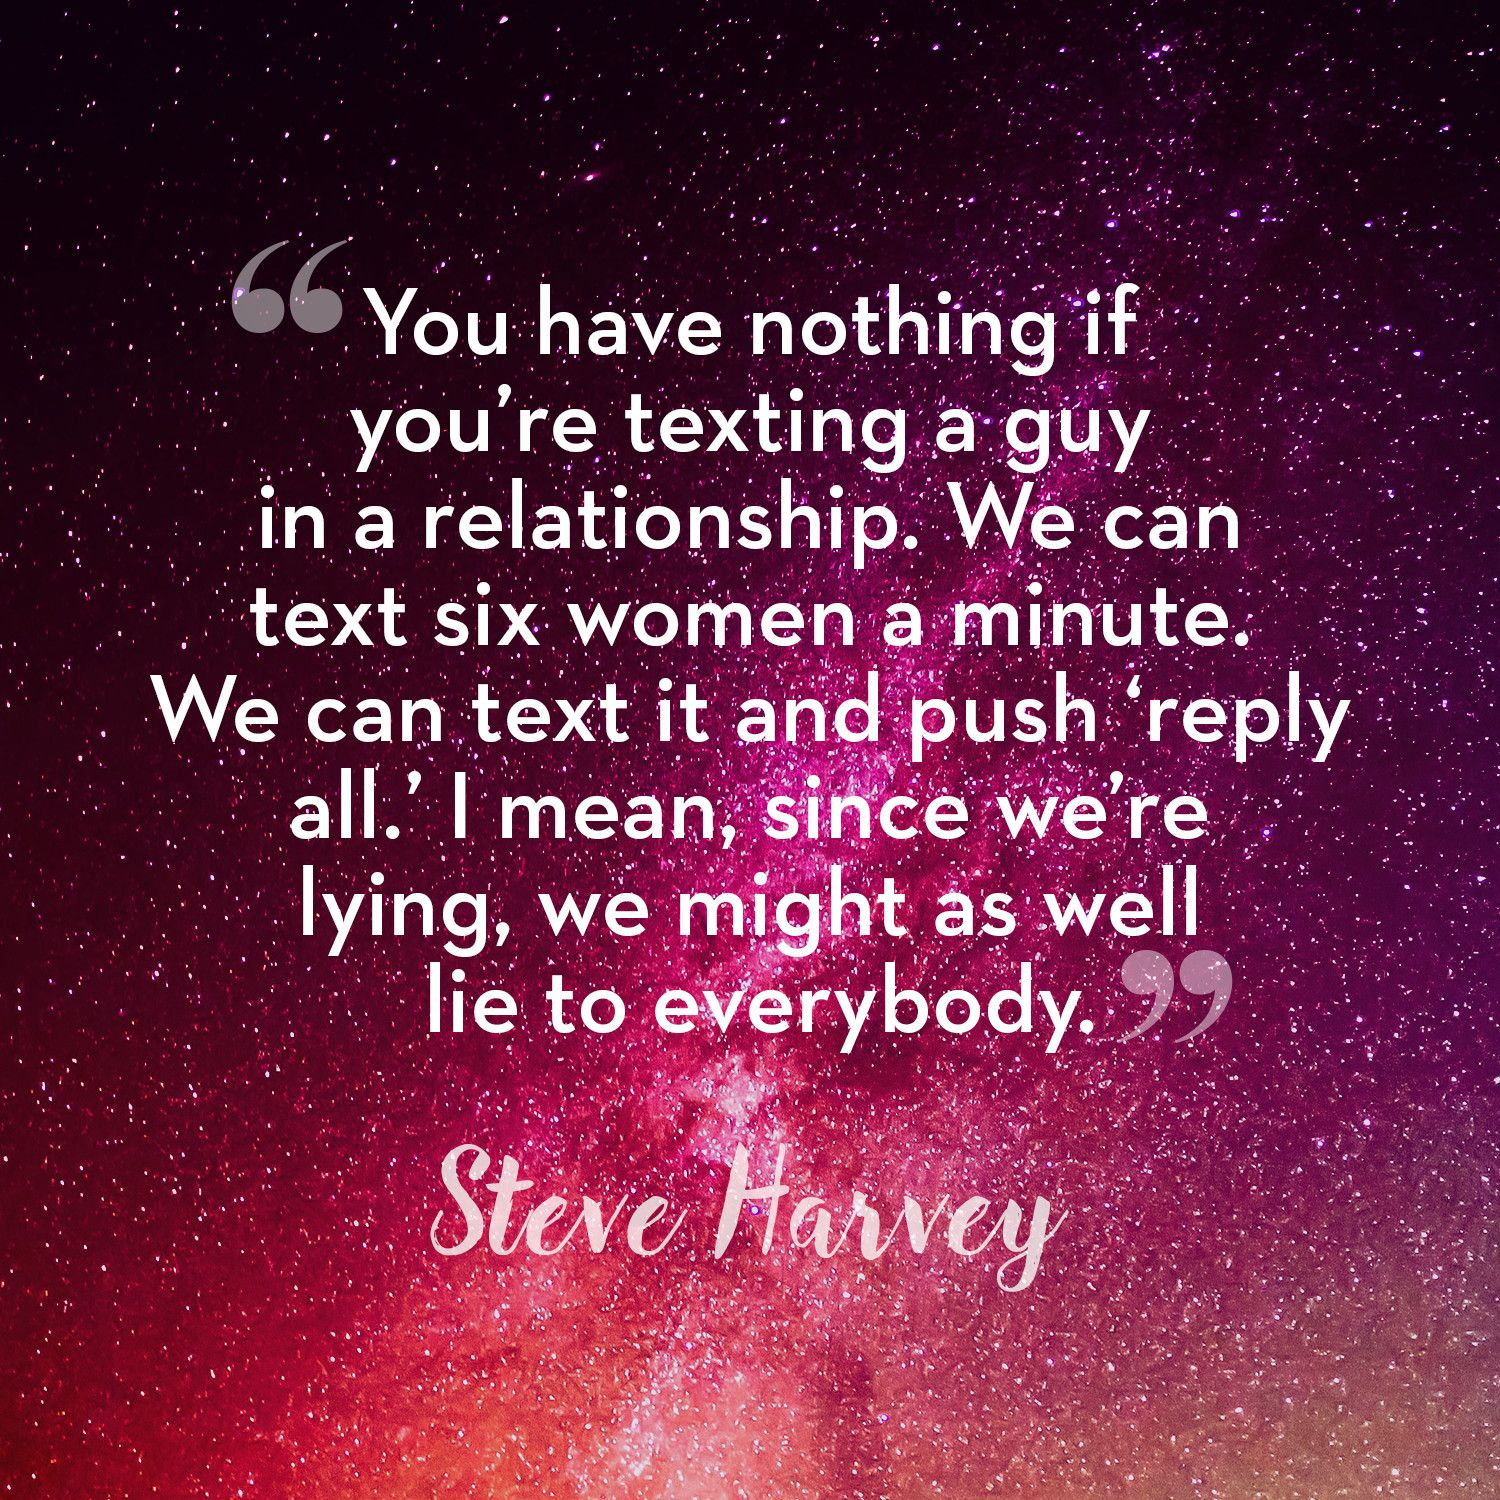 Steve Harvey Quotes 50 Best Relationship Quotes From Steve Harvey  Steve Harvey .